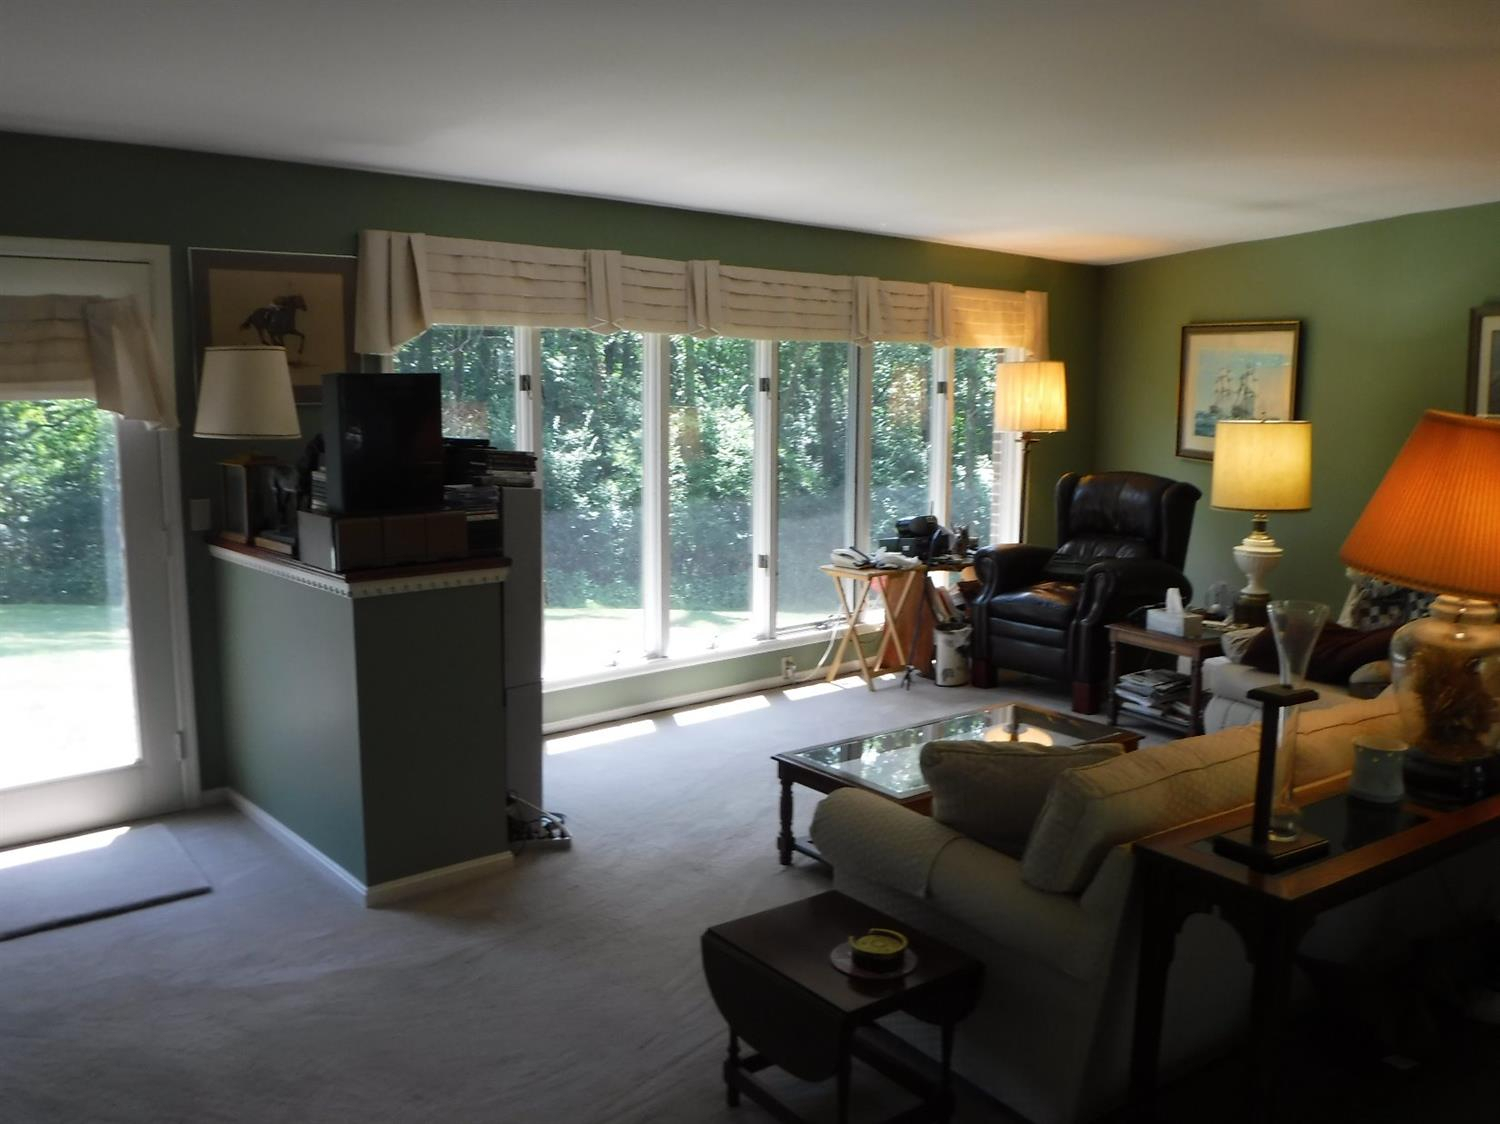 Residential For Sale In Miami Twp, Ohio, 1594403 with Weber County School District Schedule